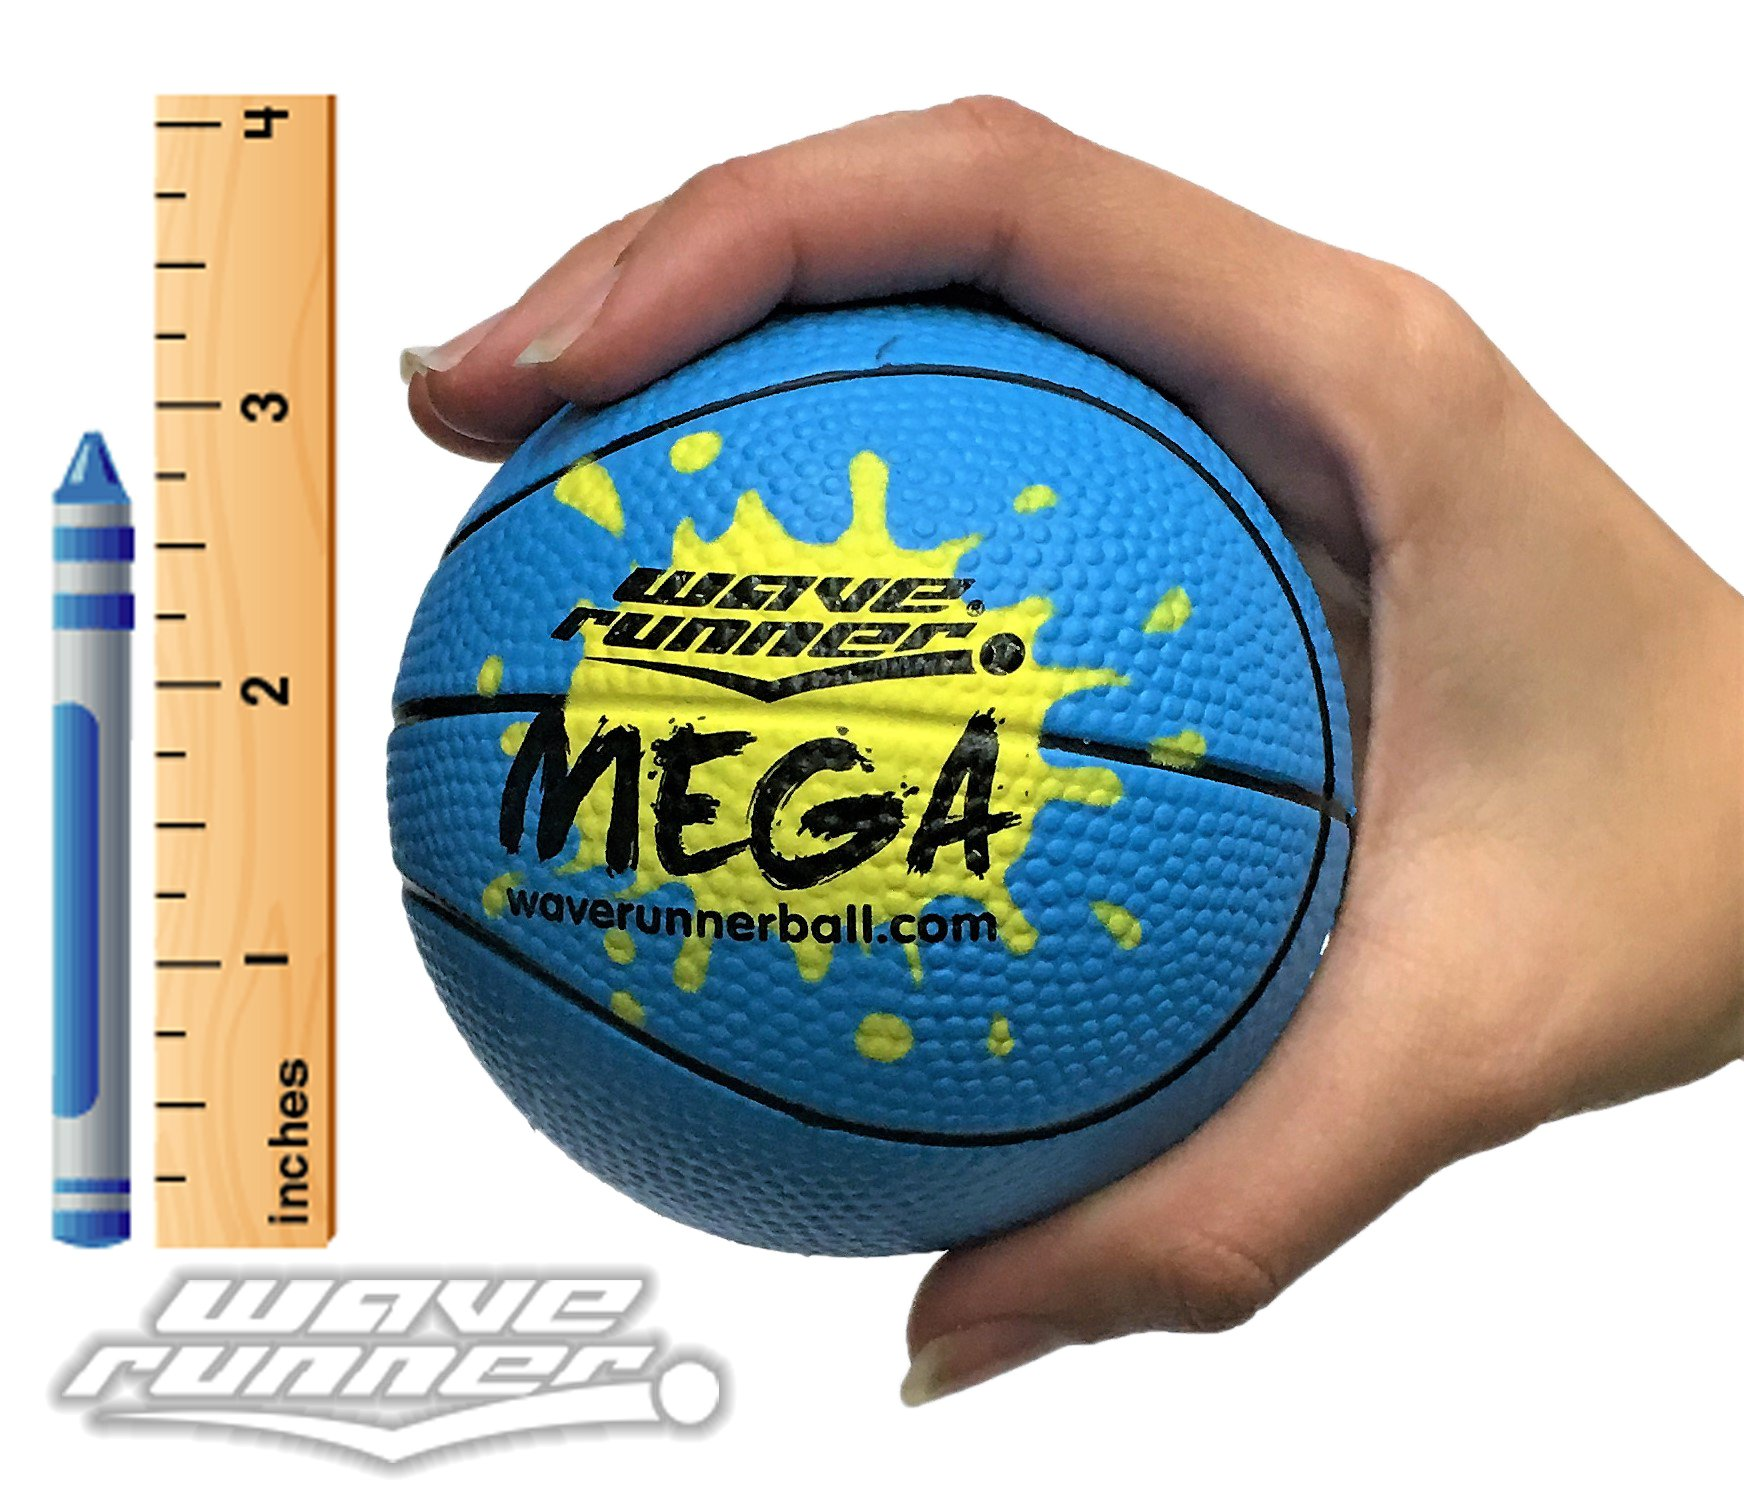 Wave Runner Mega Sports Miniature Basketball 3.5'' Waterproof Bouncing Ball for all Ages Colors May Vary by Wave Runner